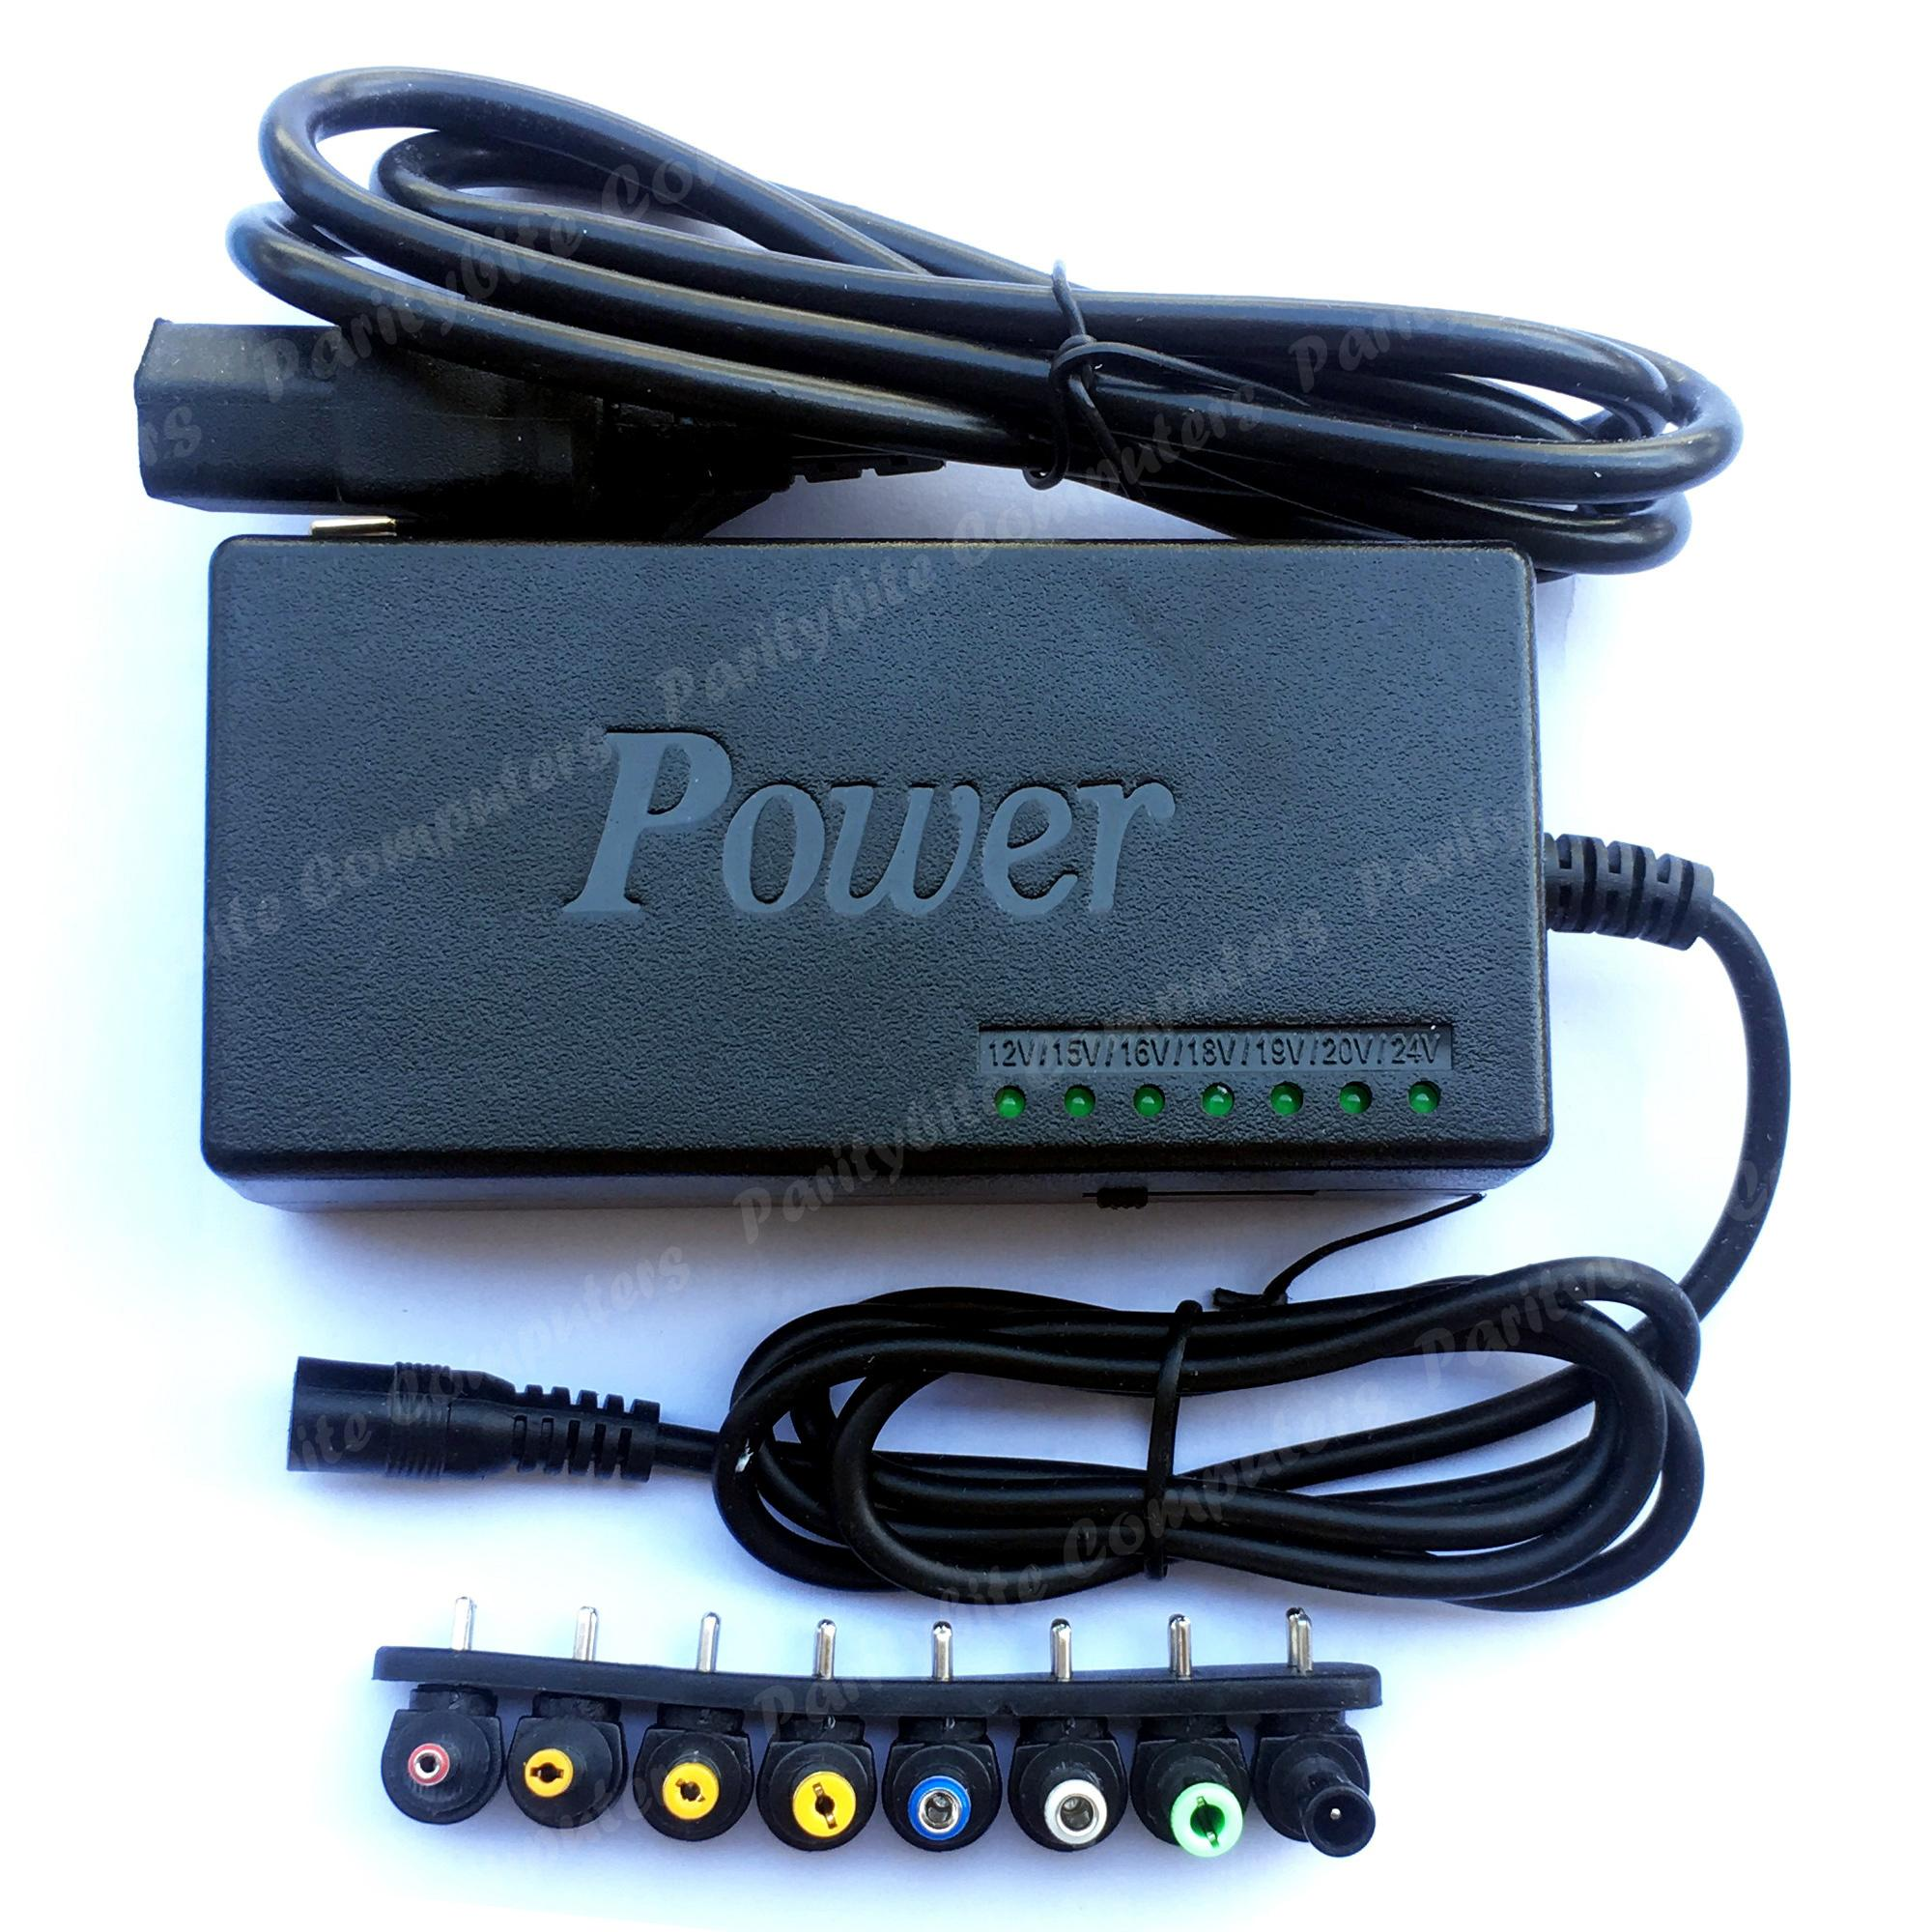 Universal Laptop Charger Adapter 12V-24V Switchable 96watts (black)